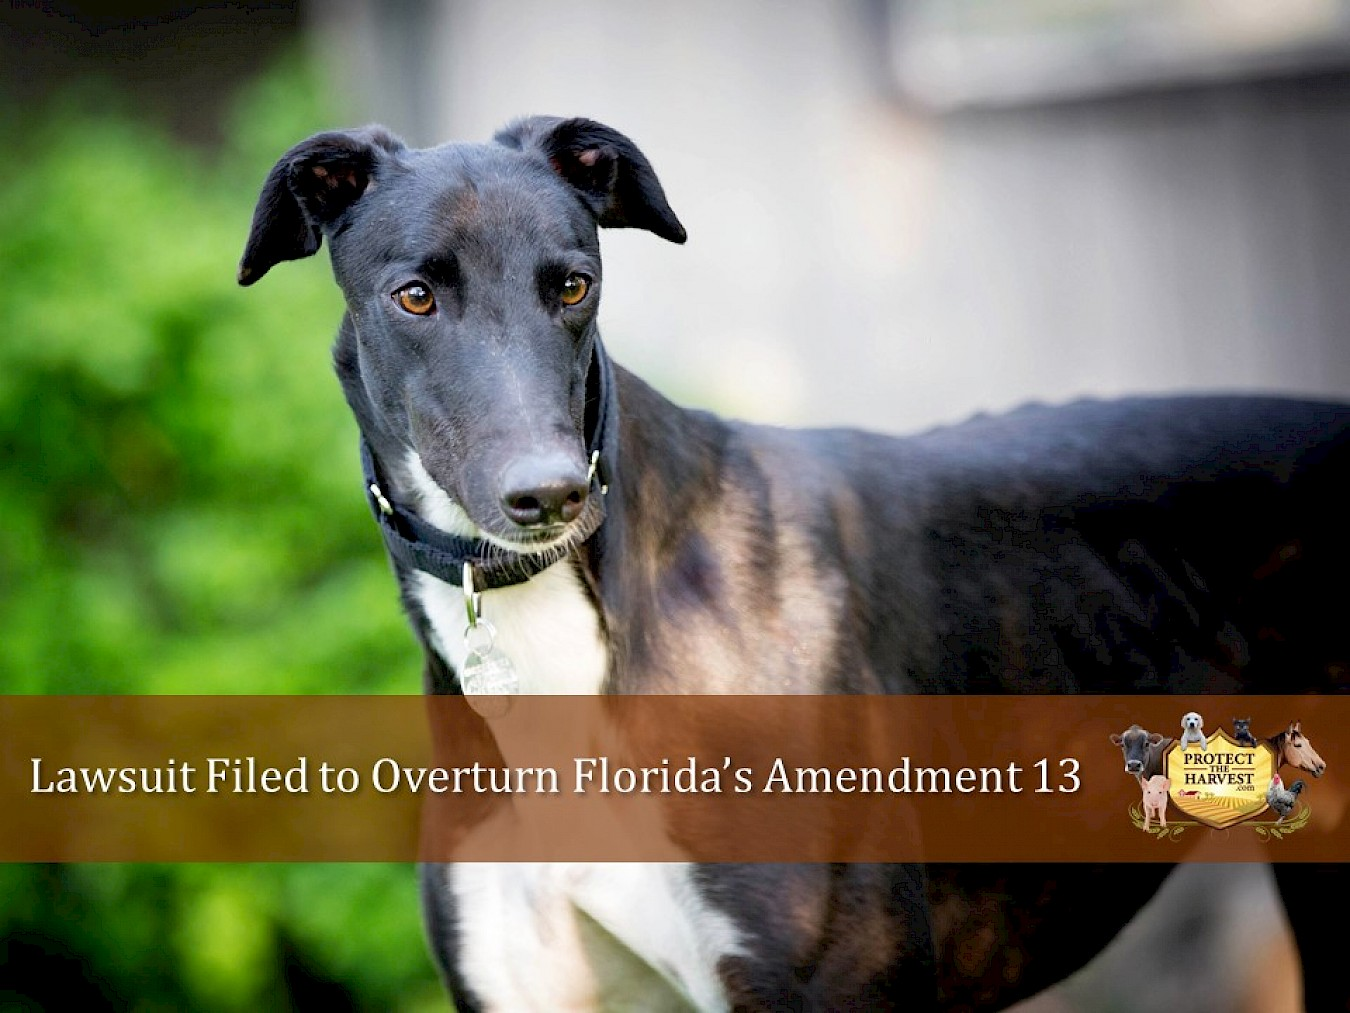 Lawsuit Filed to Overturn Florida's Amendment 13